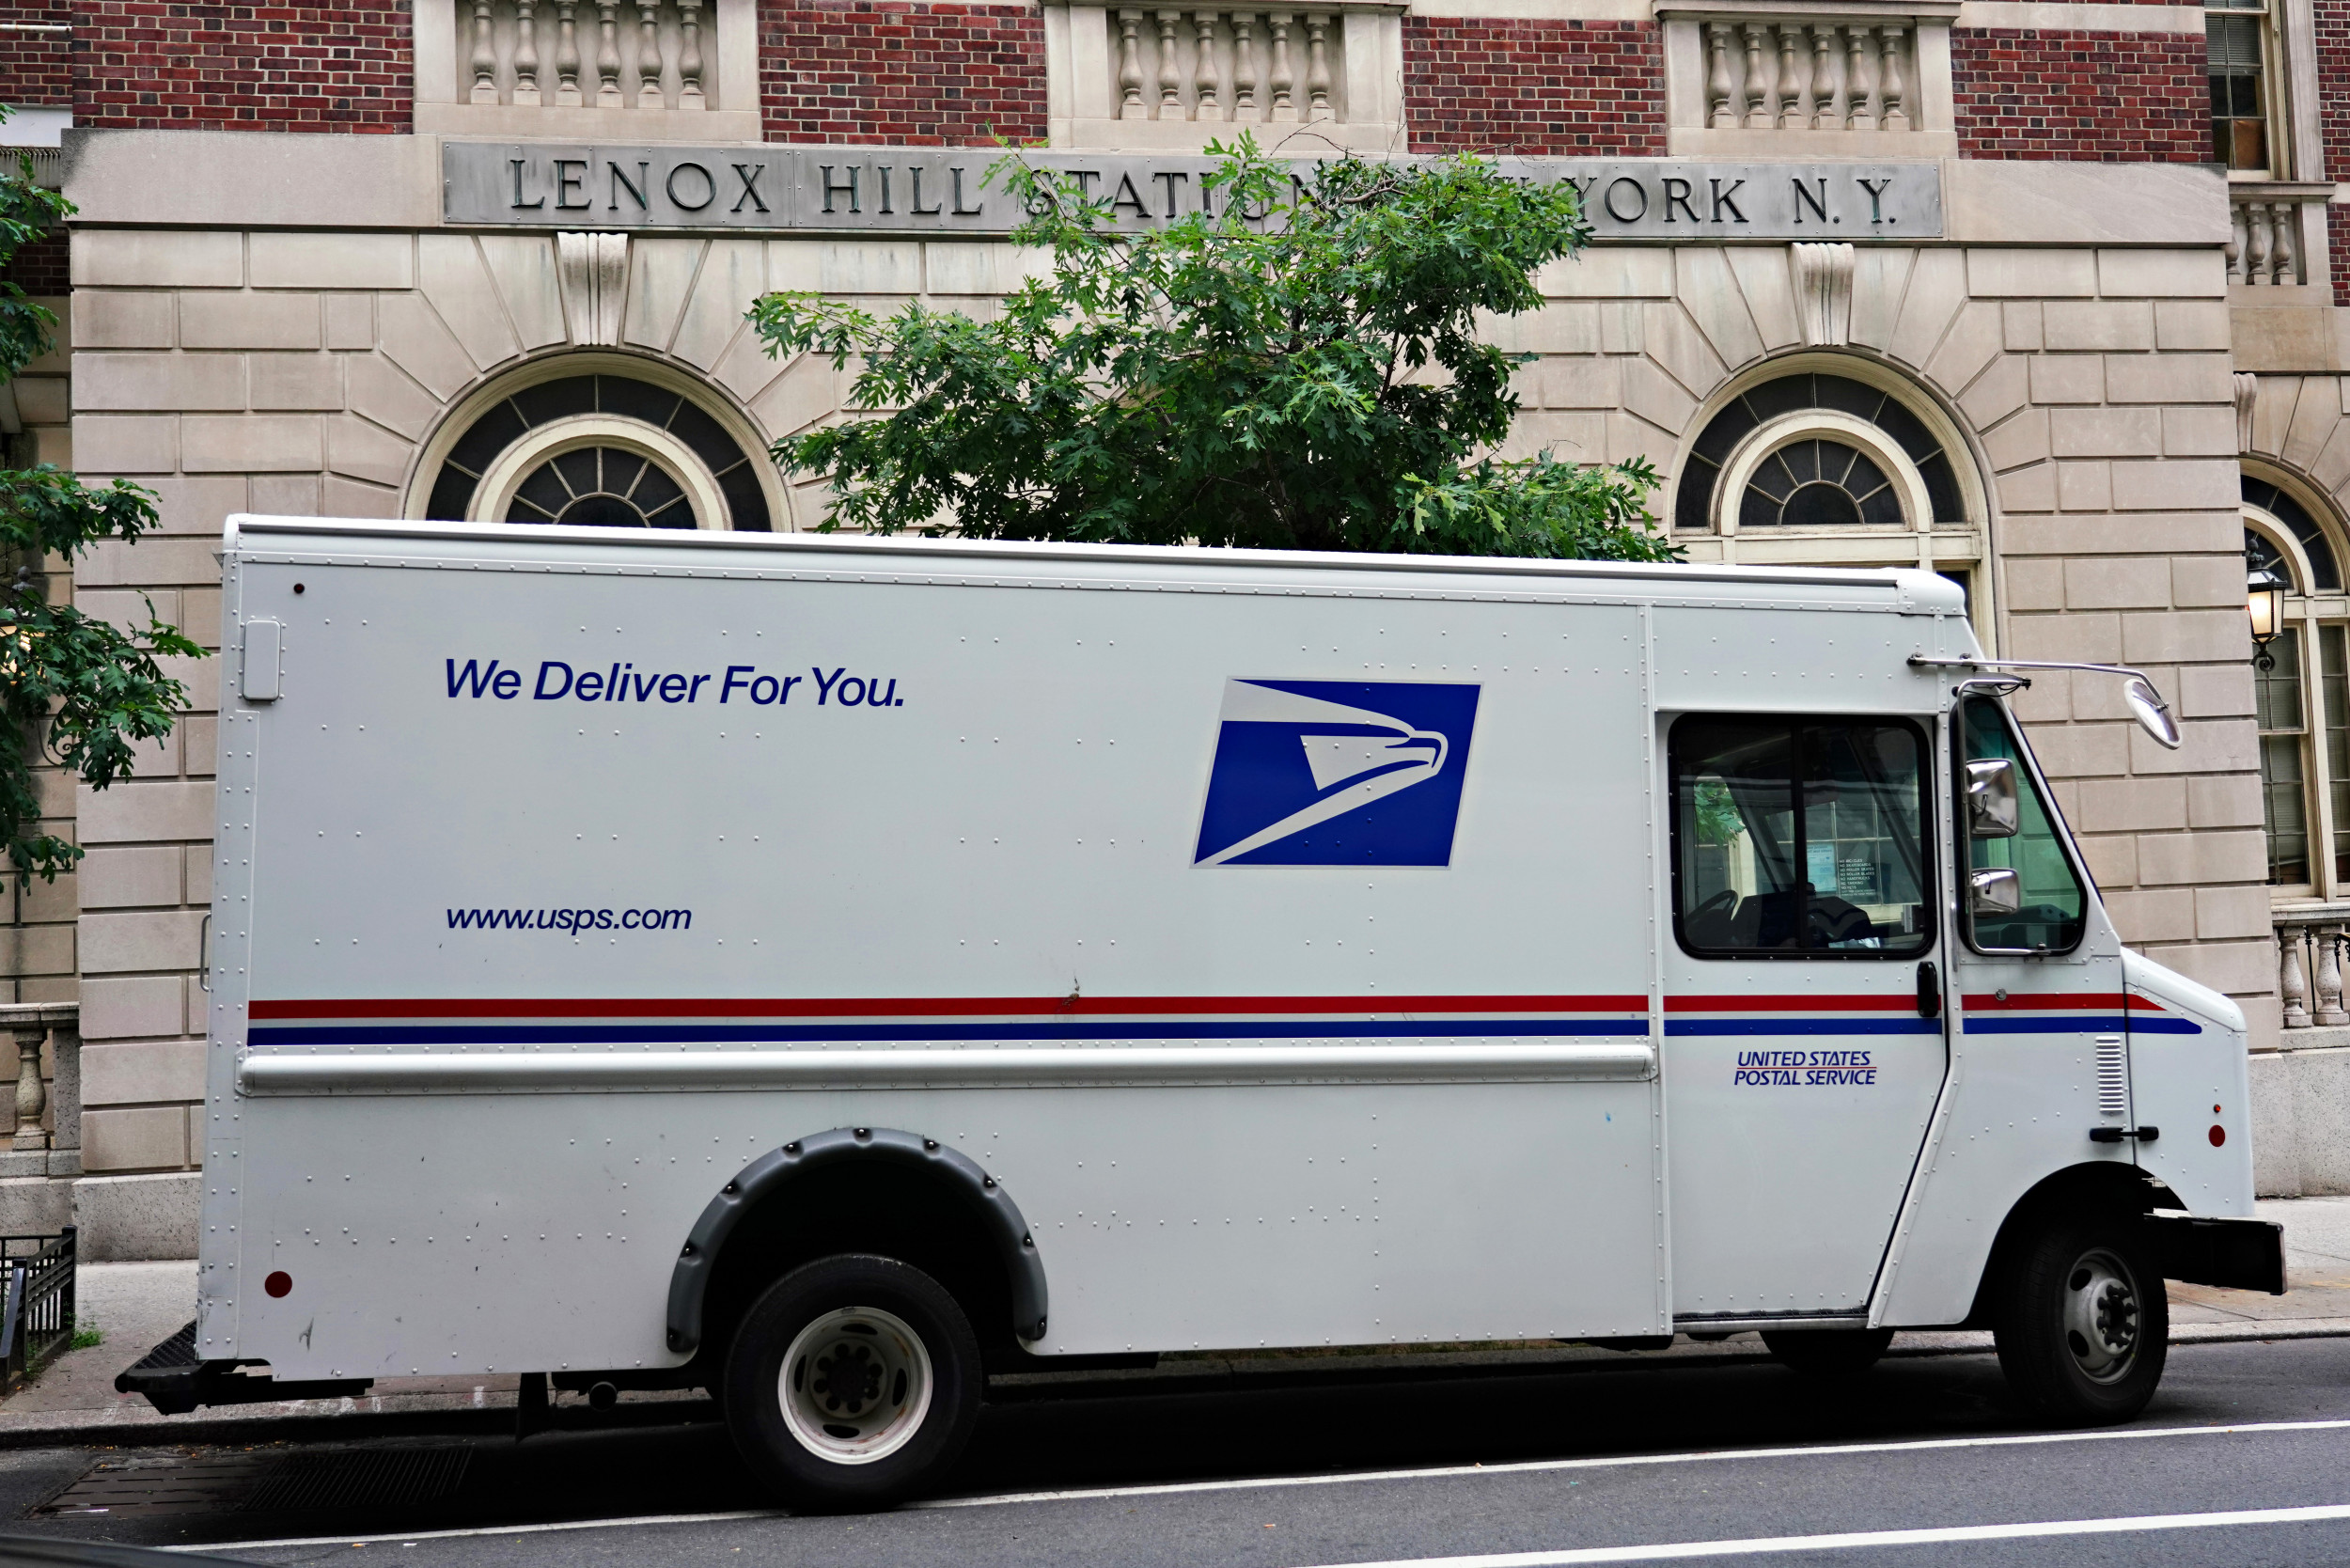 Mail-in voting concerns prompt House to ask Postmaster General to hearing